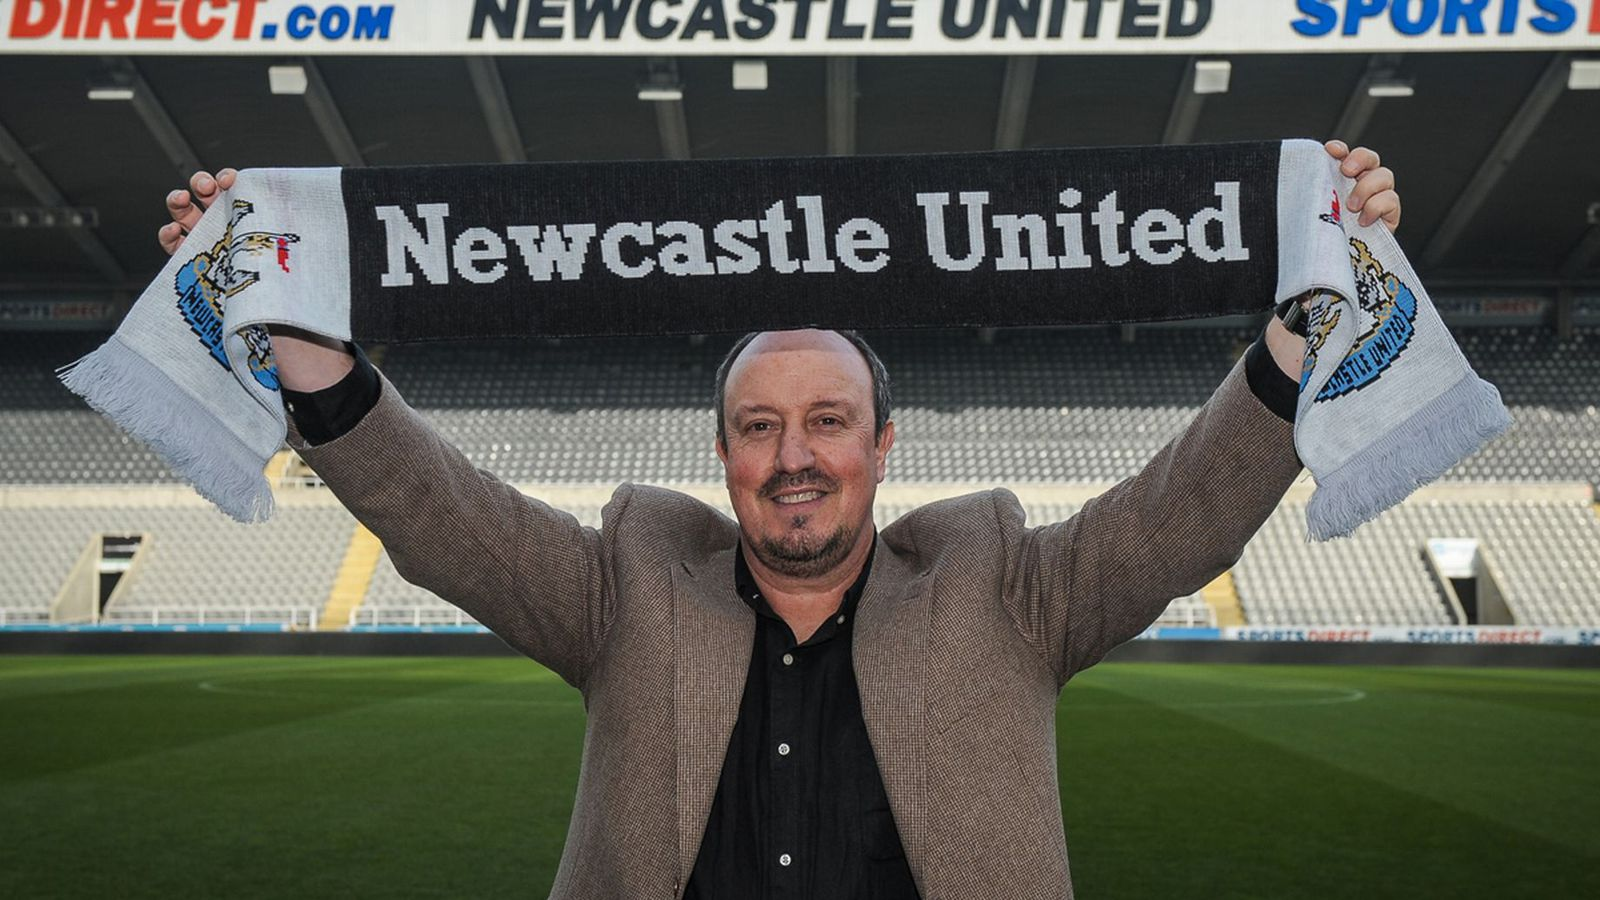 Rafael_benitez_poses_holding_a_club_scarf_signing_as_newcastle_s_new_manager.0